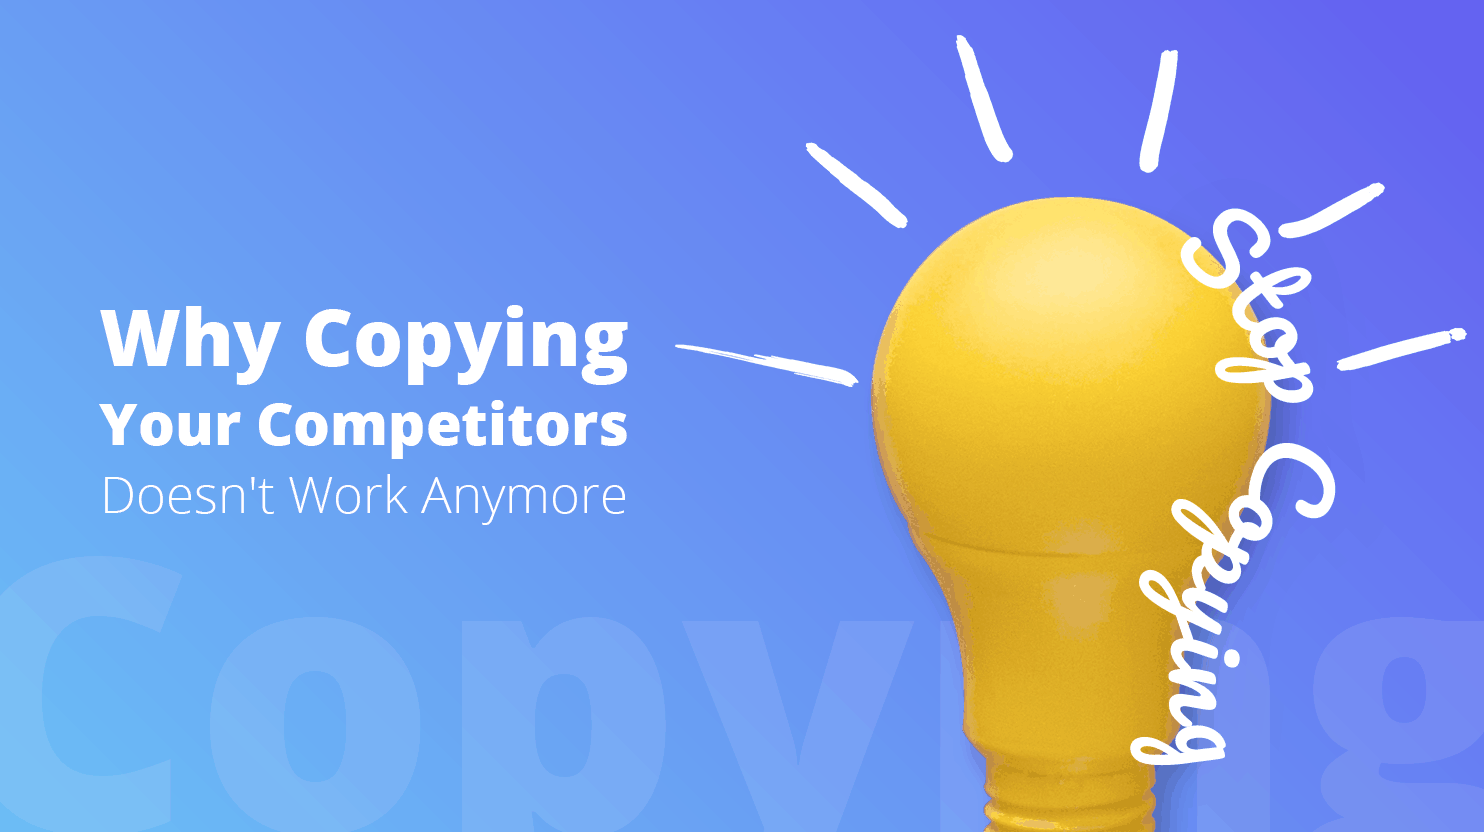 Why Copying Your Competitor Doesn't Work Anymore